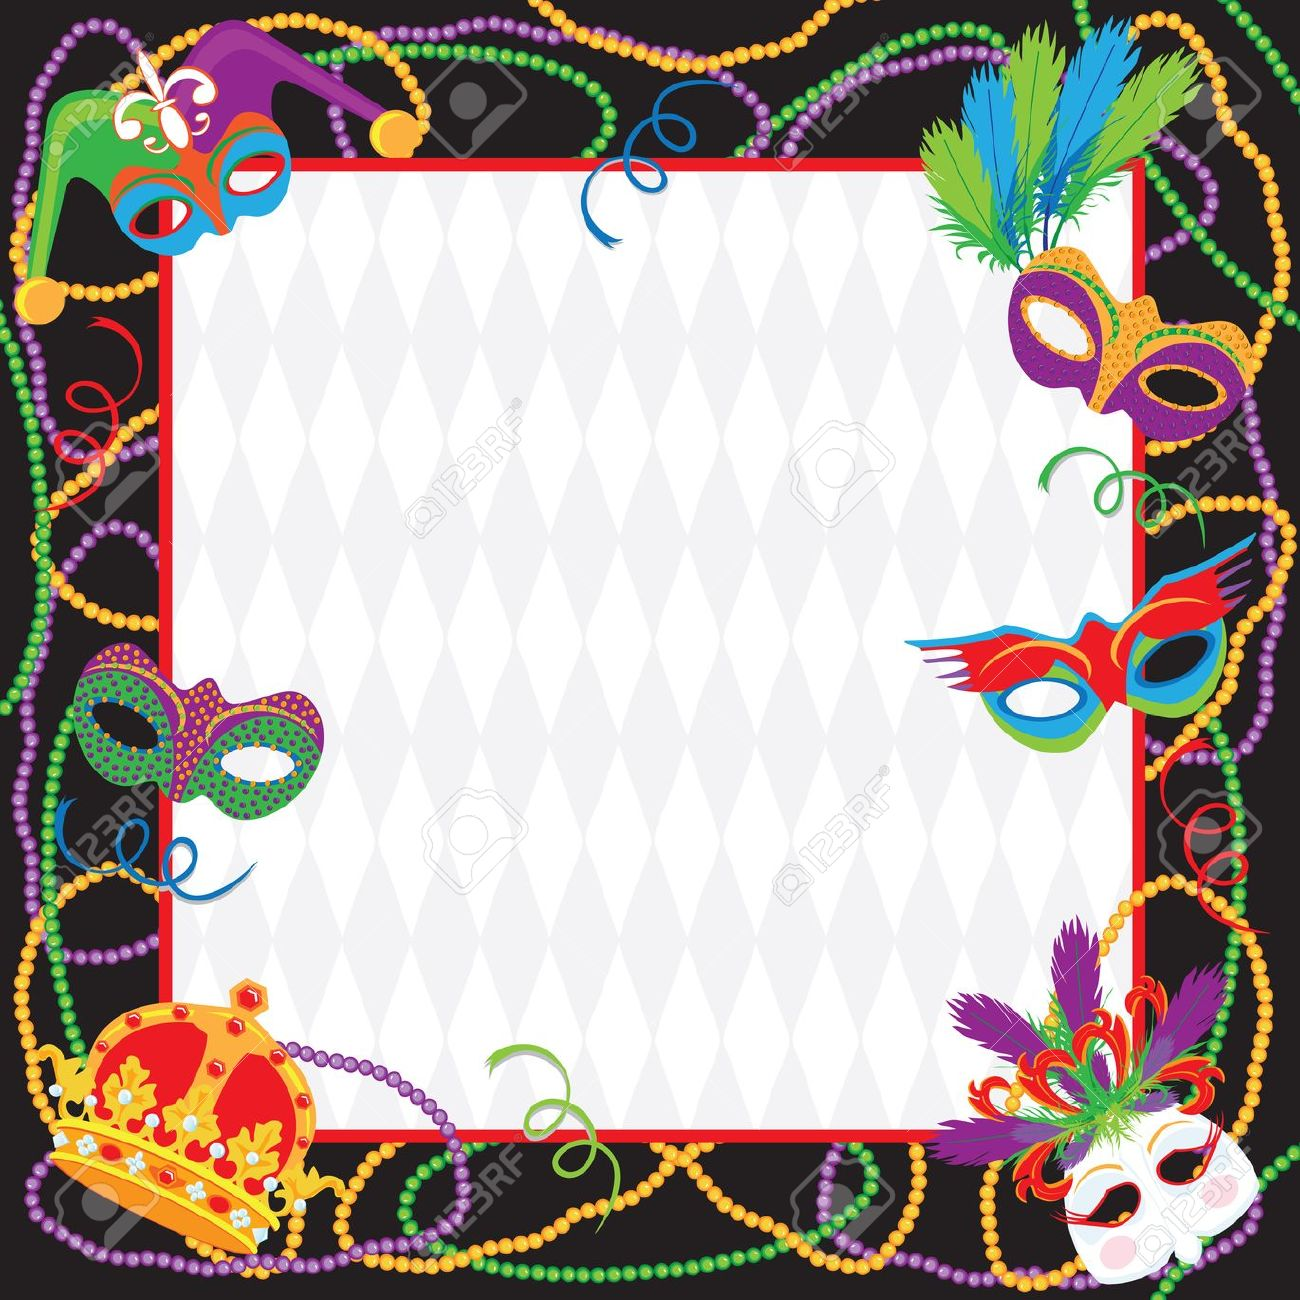 Mardi Gras Party Invitation Royalty Free Cliparts, Vectors, And